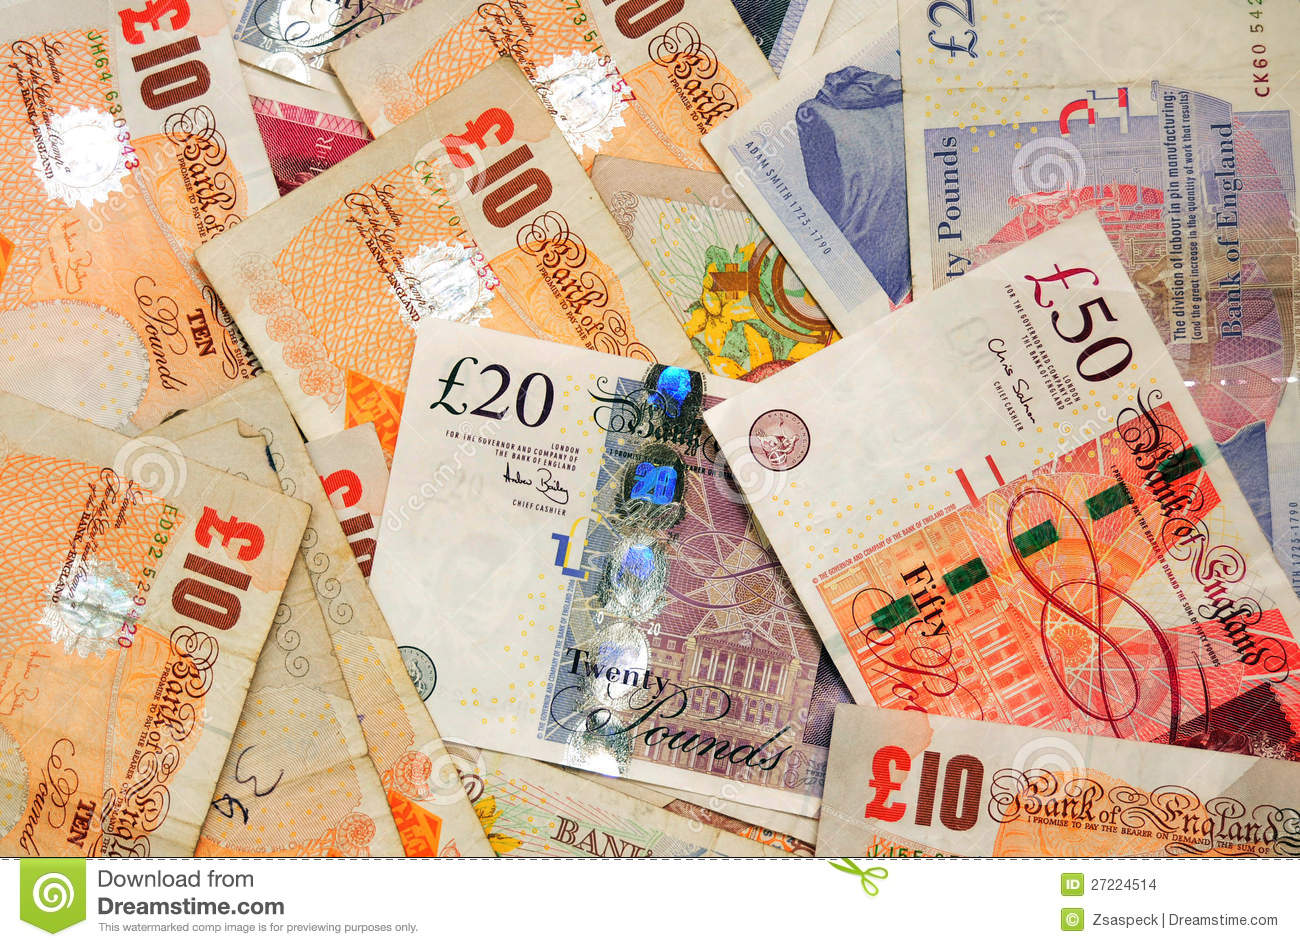 Many pound sterling bank notes closeup view business background.